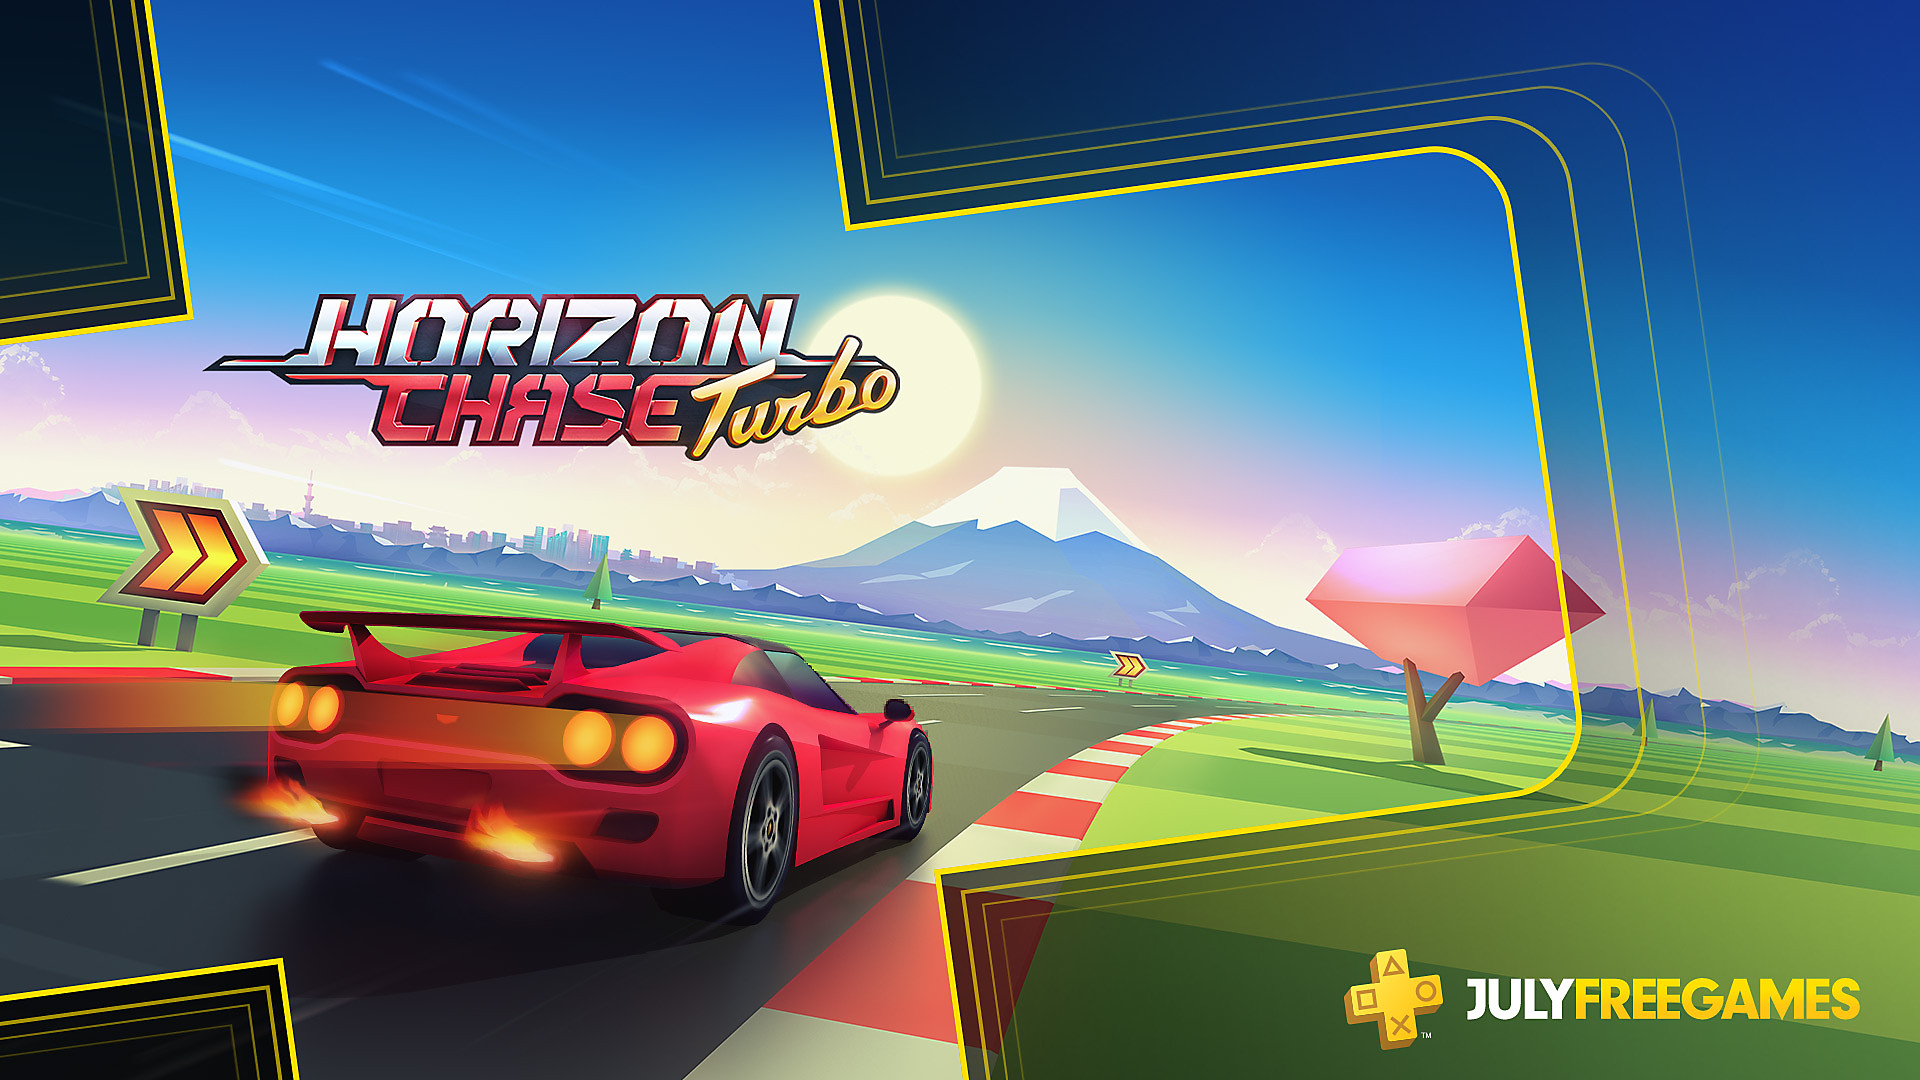 Click here to get Horizon Chase Turbo free from the PlayStation Store for PlayStation Plus members